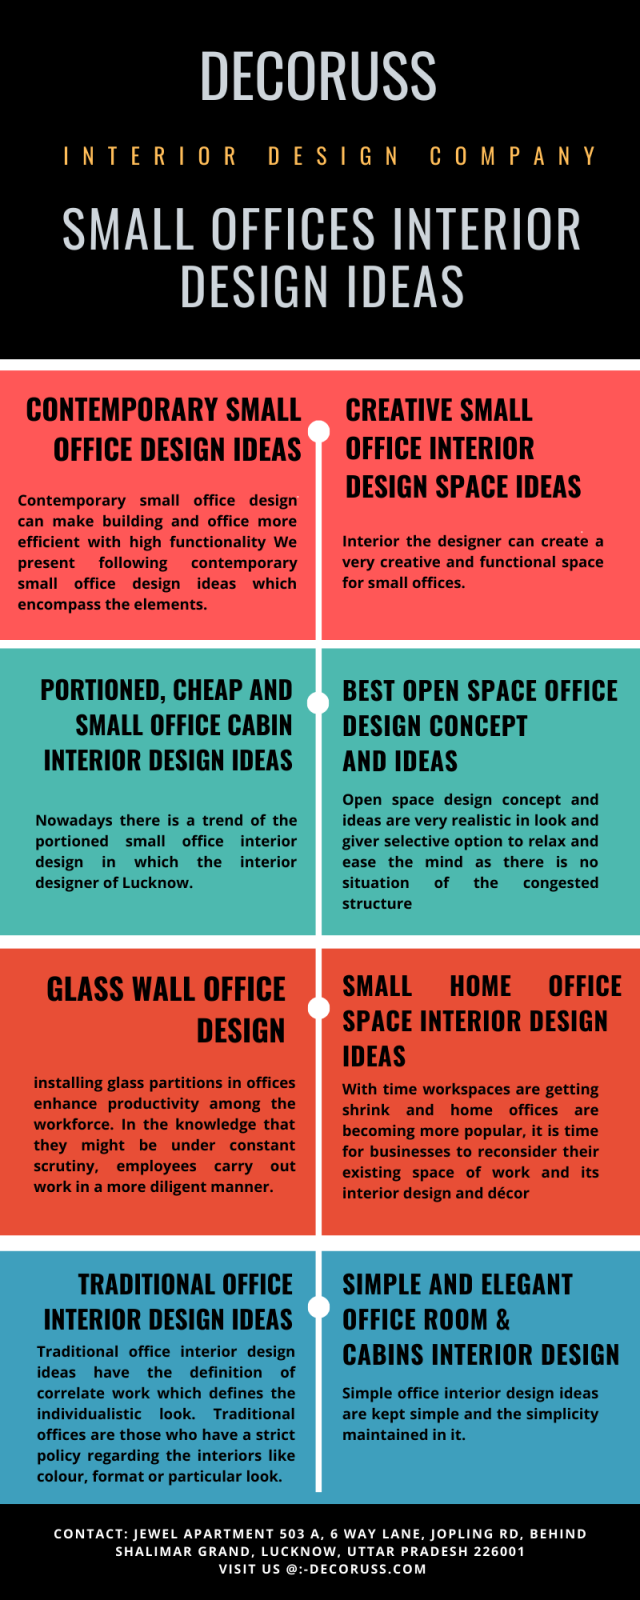 Small offices interior design ideas